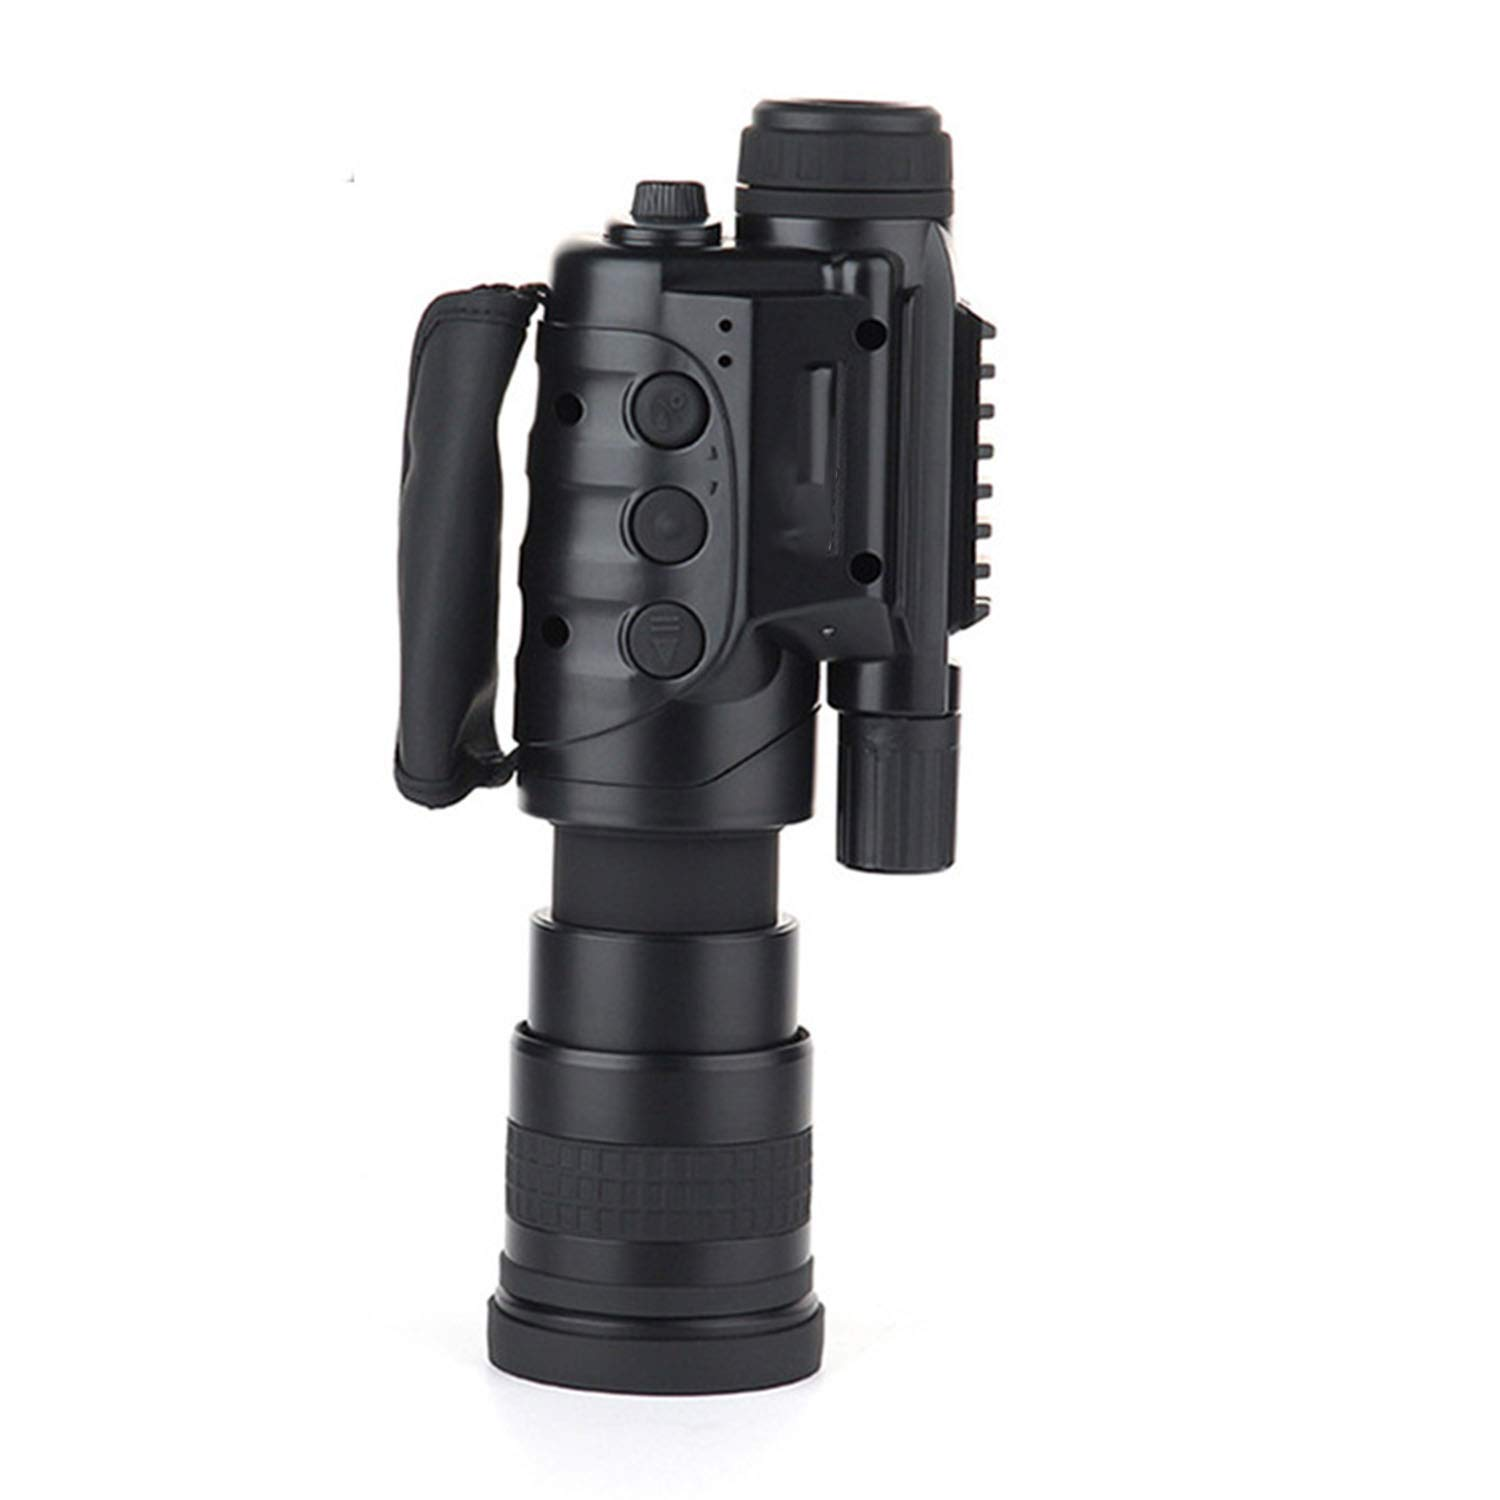 YAMADIE Digital Infrared Single-Tube Night Vision Device Night Photo Recording Detection Infrared Monocular by YAMADIE